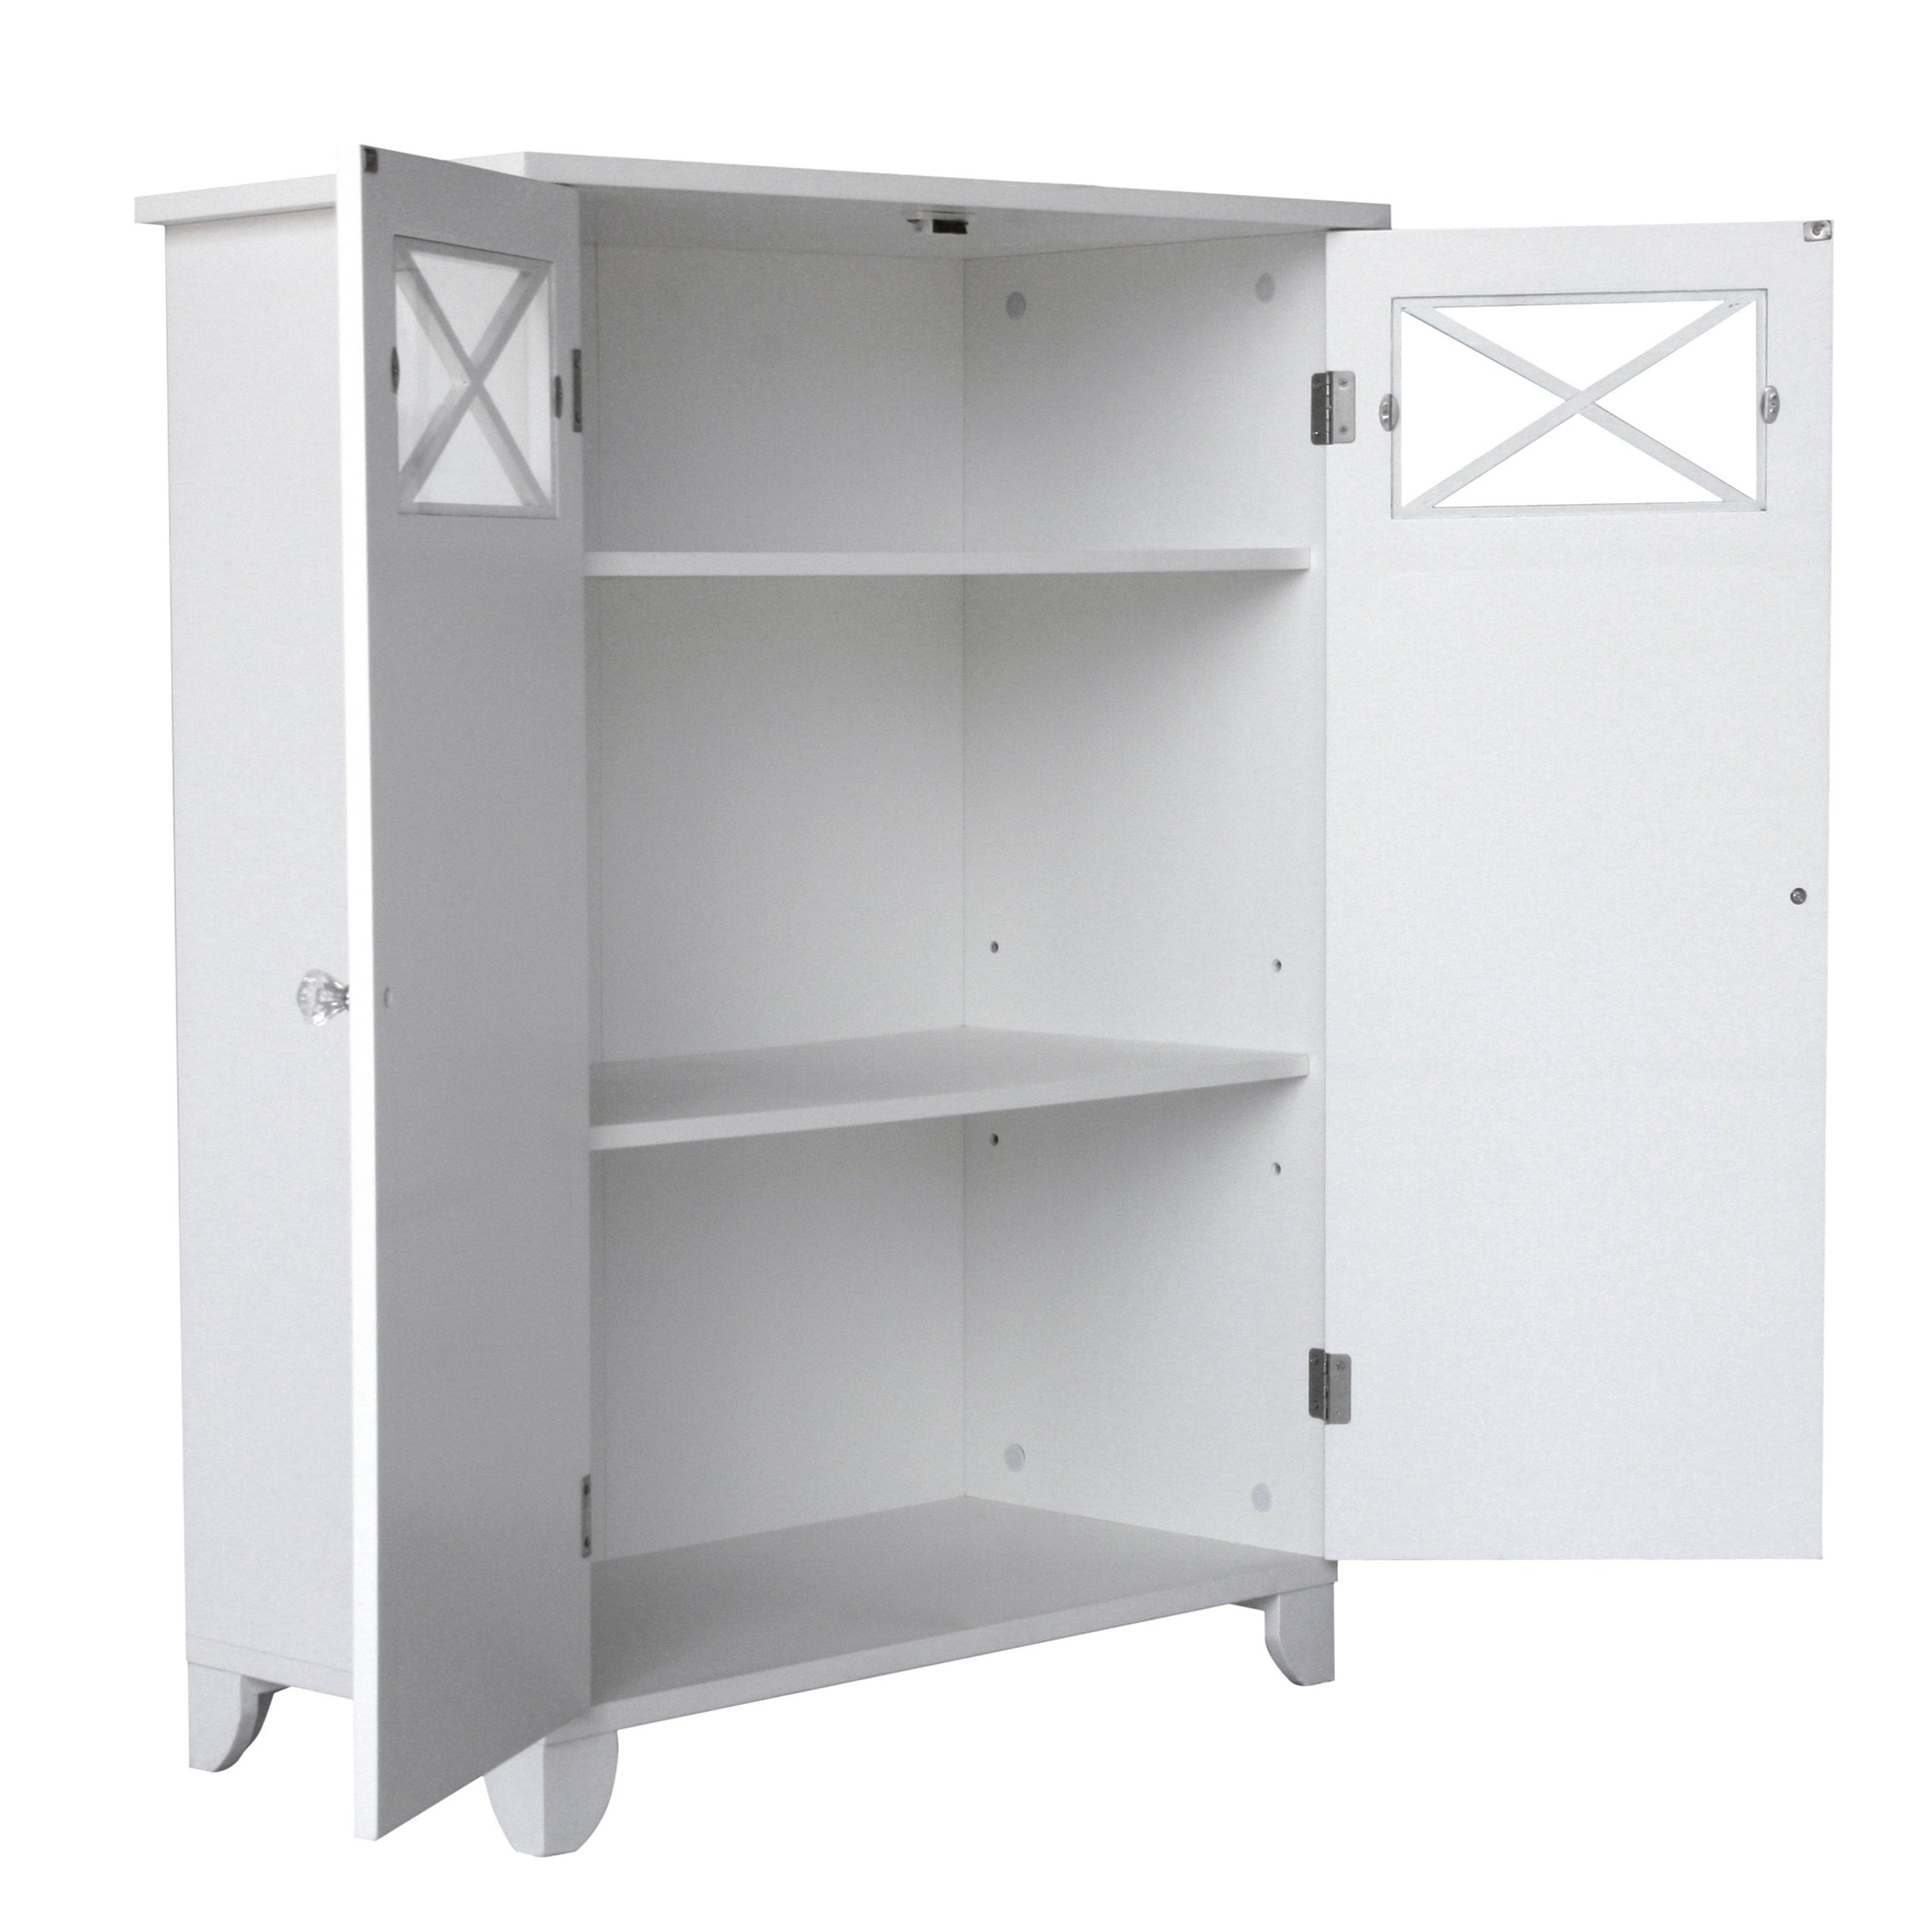 Elegant Home Fashions Dawson Collection Shelved Floor Cabinet, White by Elegant Home Fashions (Image #2)